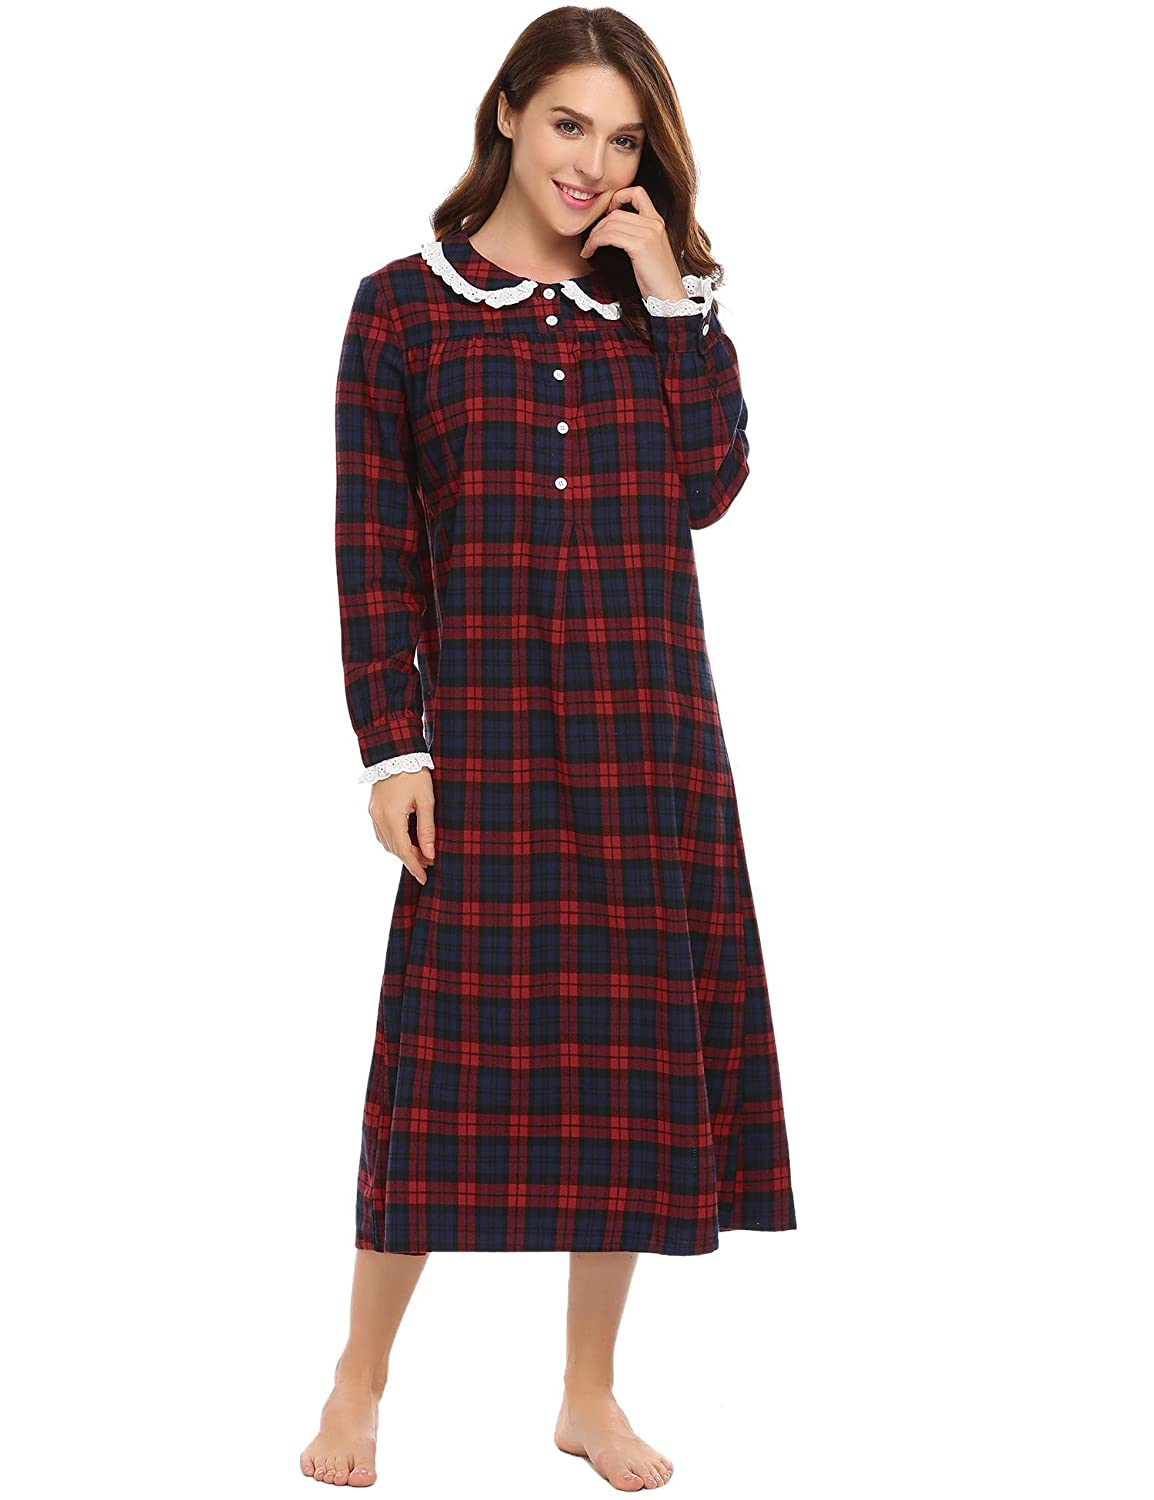 Avidlove Womens Plaid Nightdress Classic Nightgown Long Sleeve Lace-trim Nightshirt